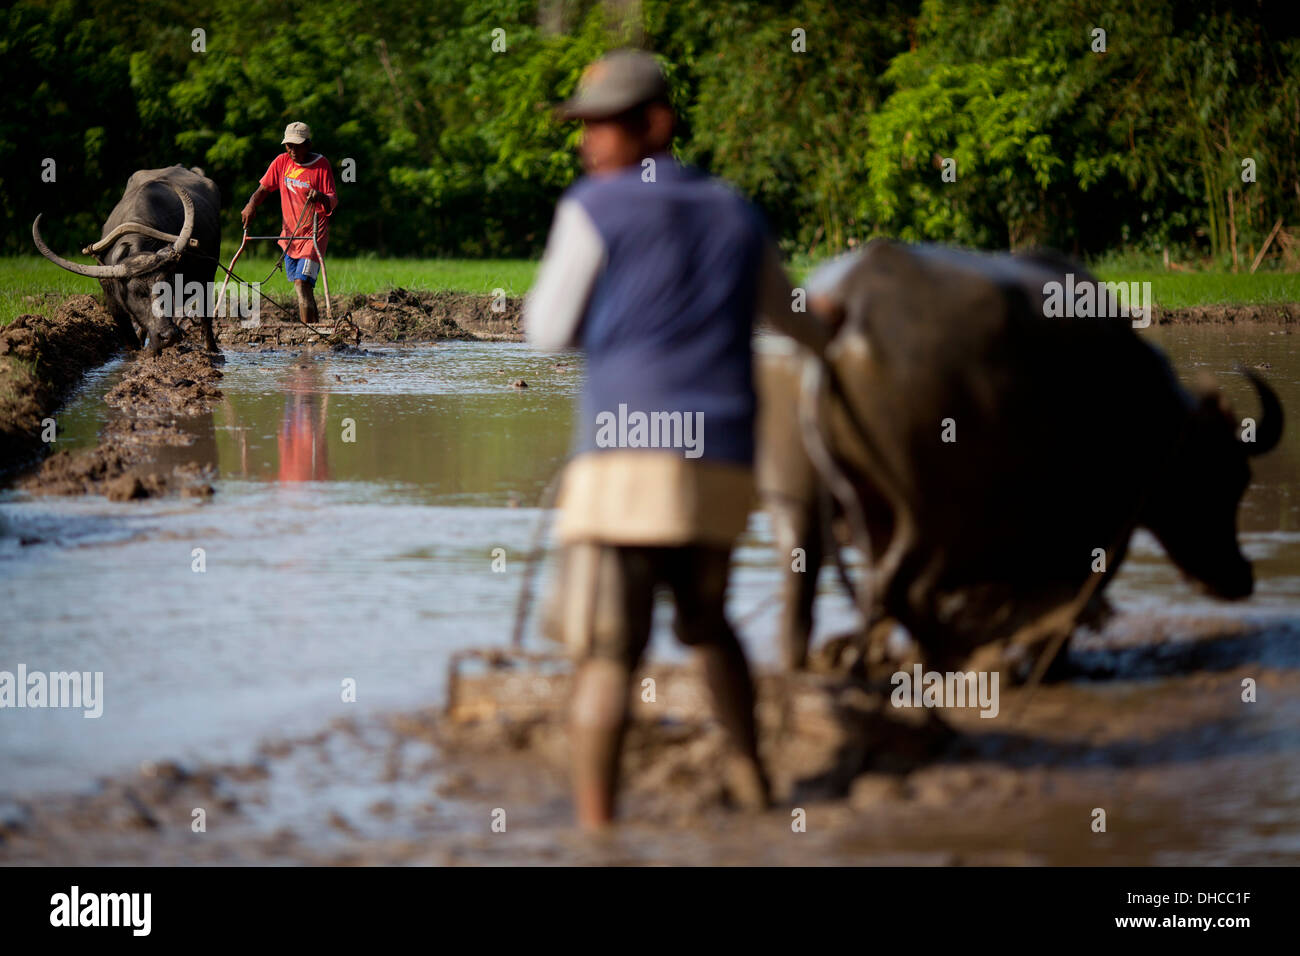 Filipino farmers drive carabaos while working to level a rice field near Mansalay, Oriental Mindoro, Philippines. Stock Photo